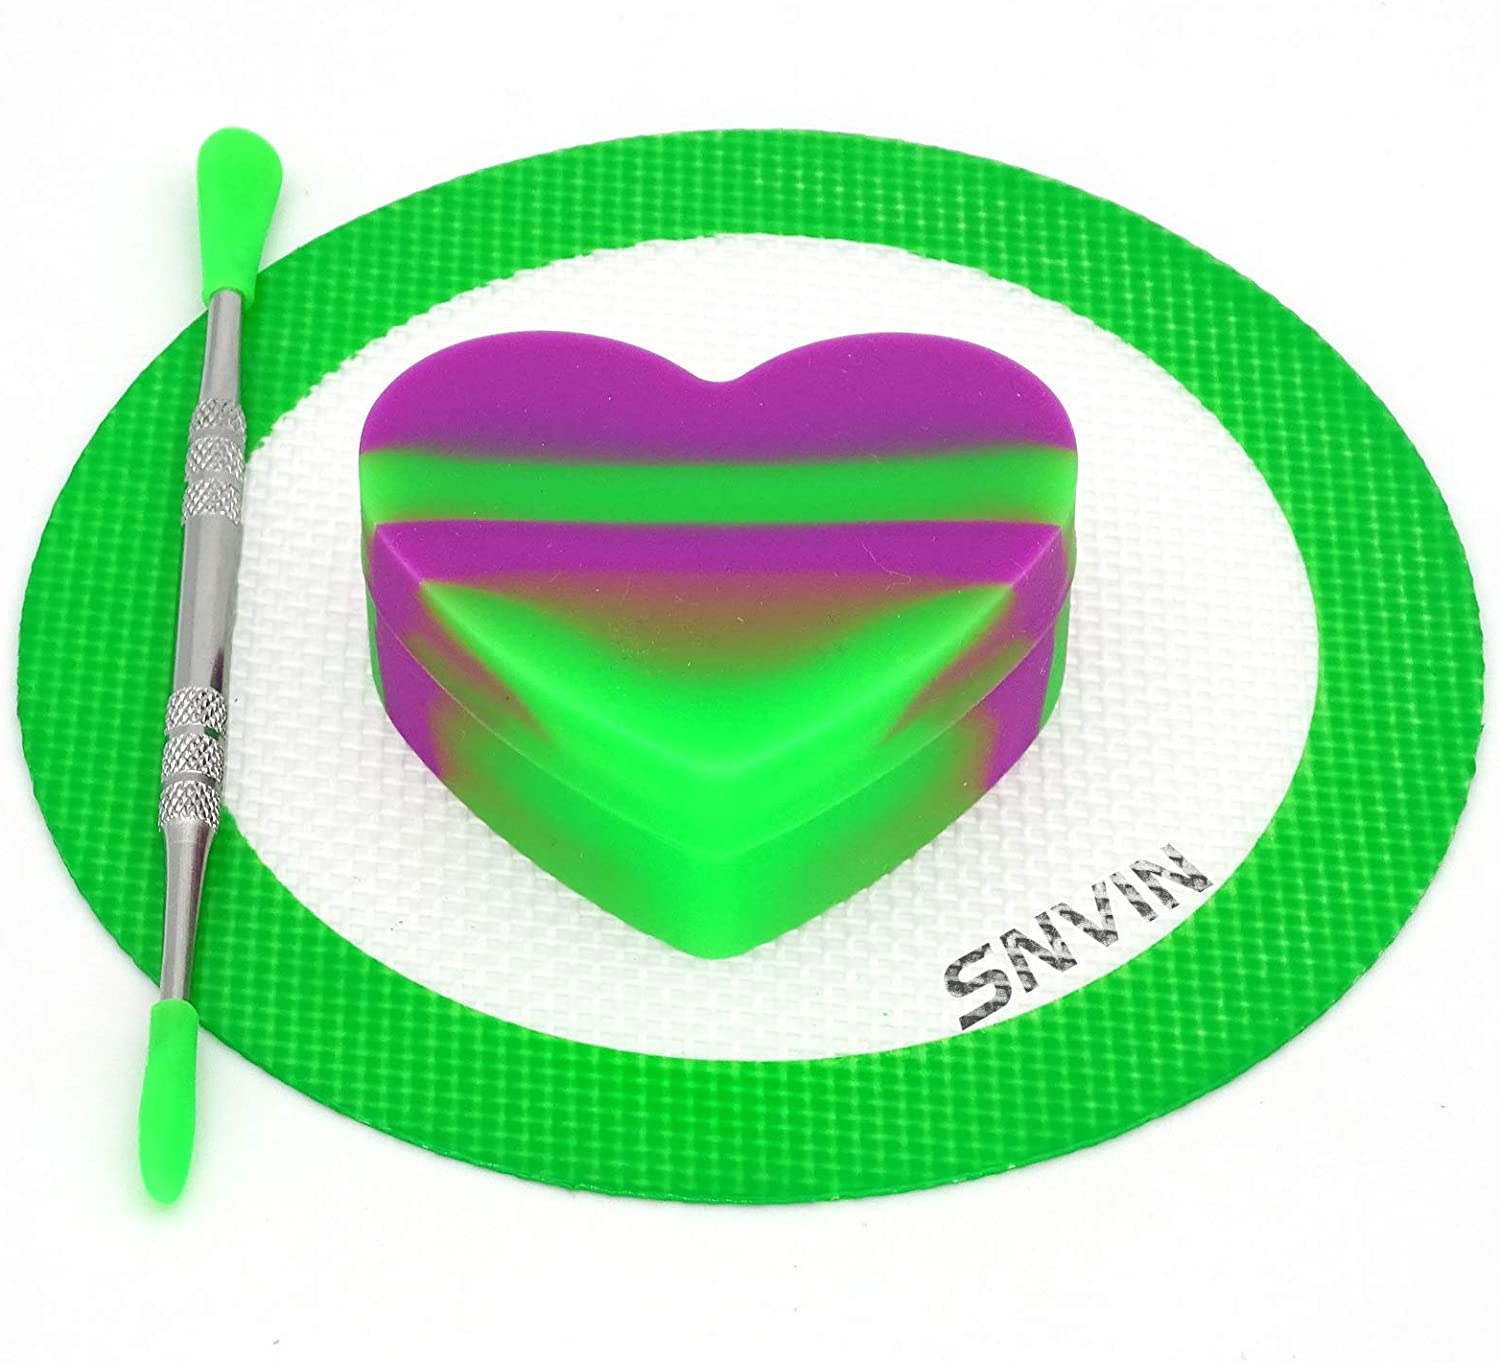 SNVIN Heart-Shaped Silicone Wax Concentrate Containers Non-stick Jar Comes with a Heat-Resistant Silicone Pad and Carving tool Set (Purple/Green)